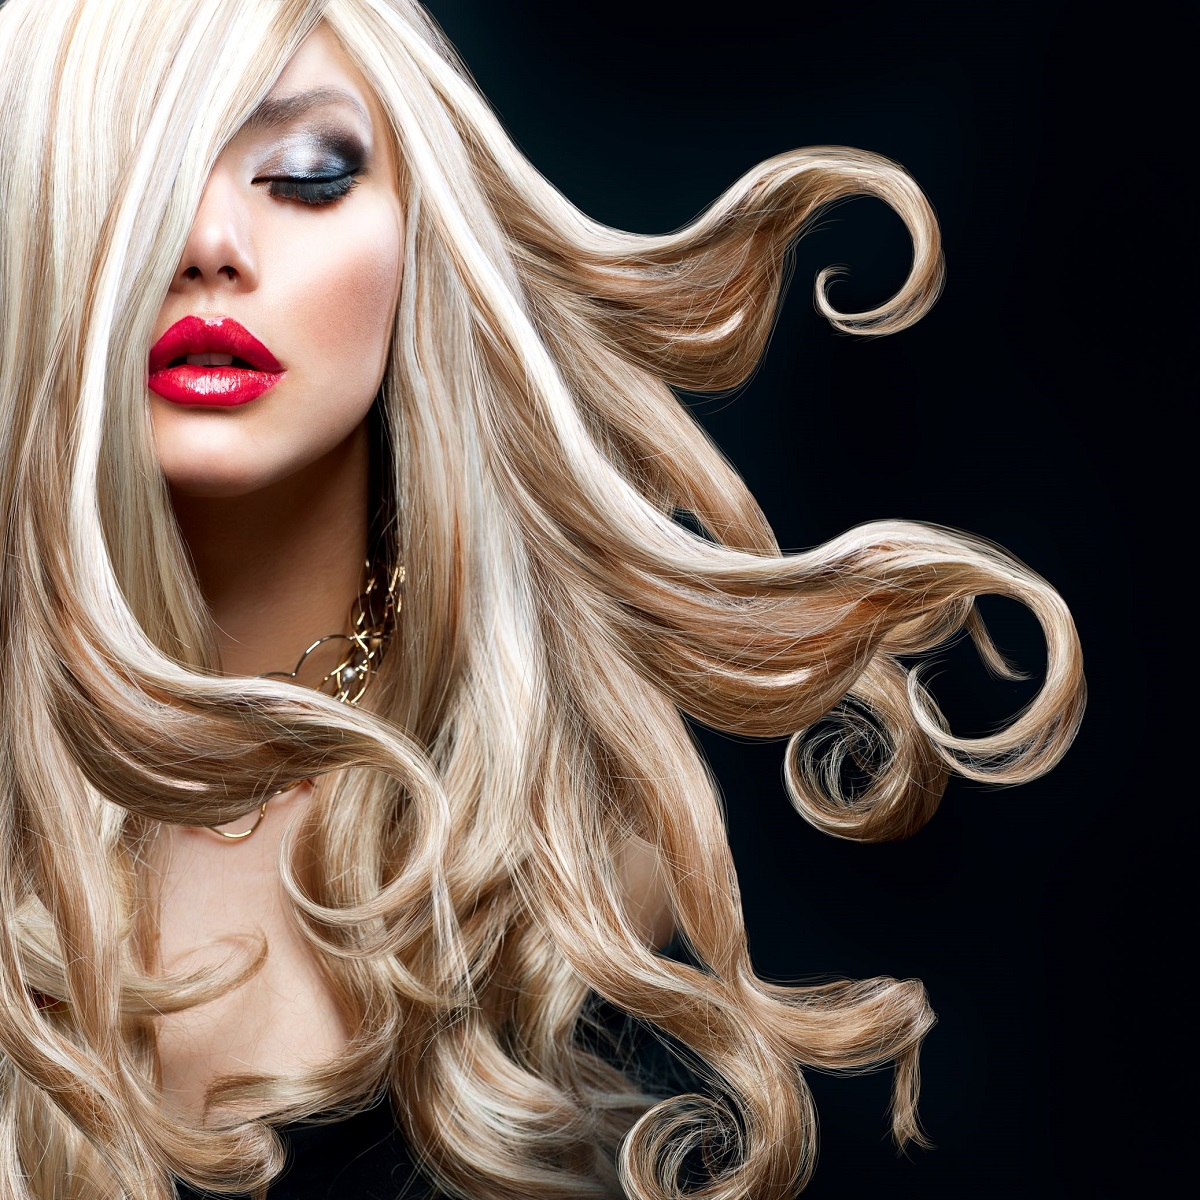 Impressive Blond Hair Styling!